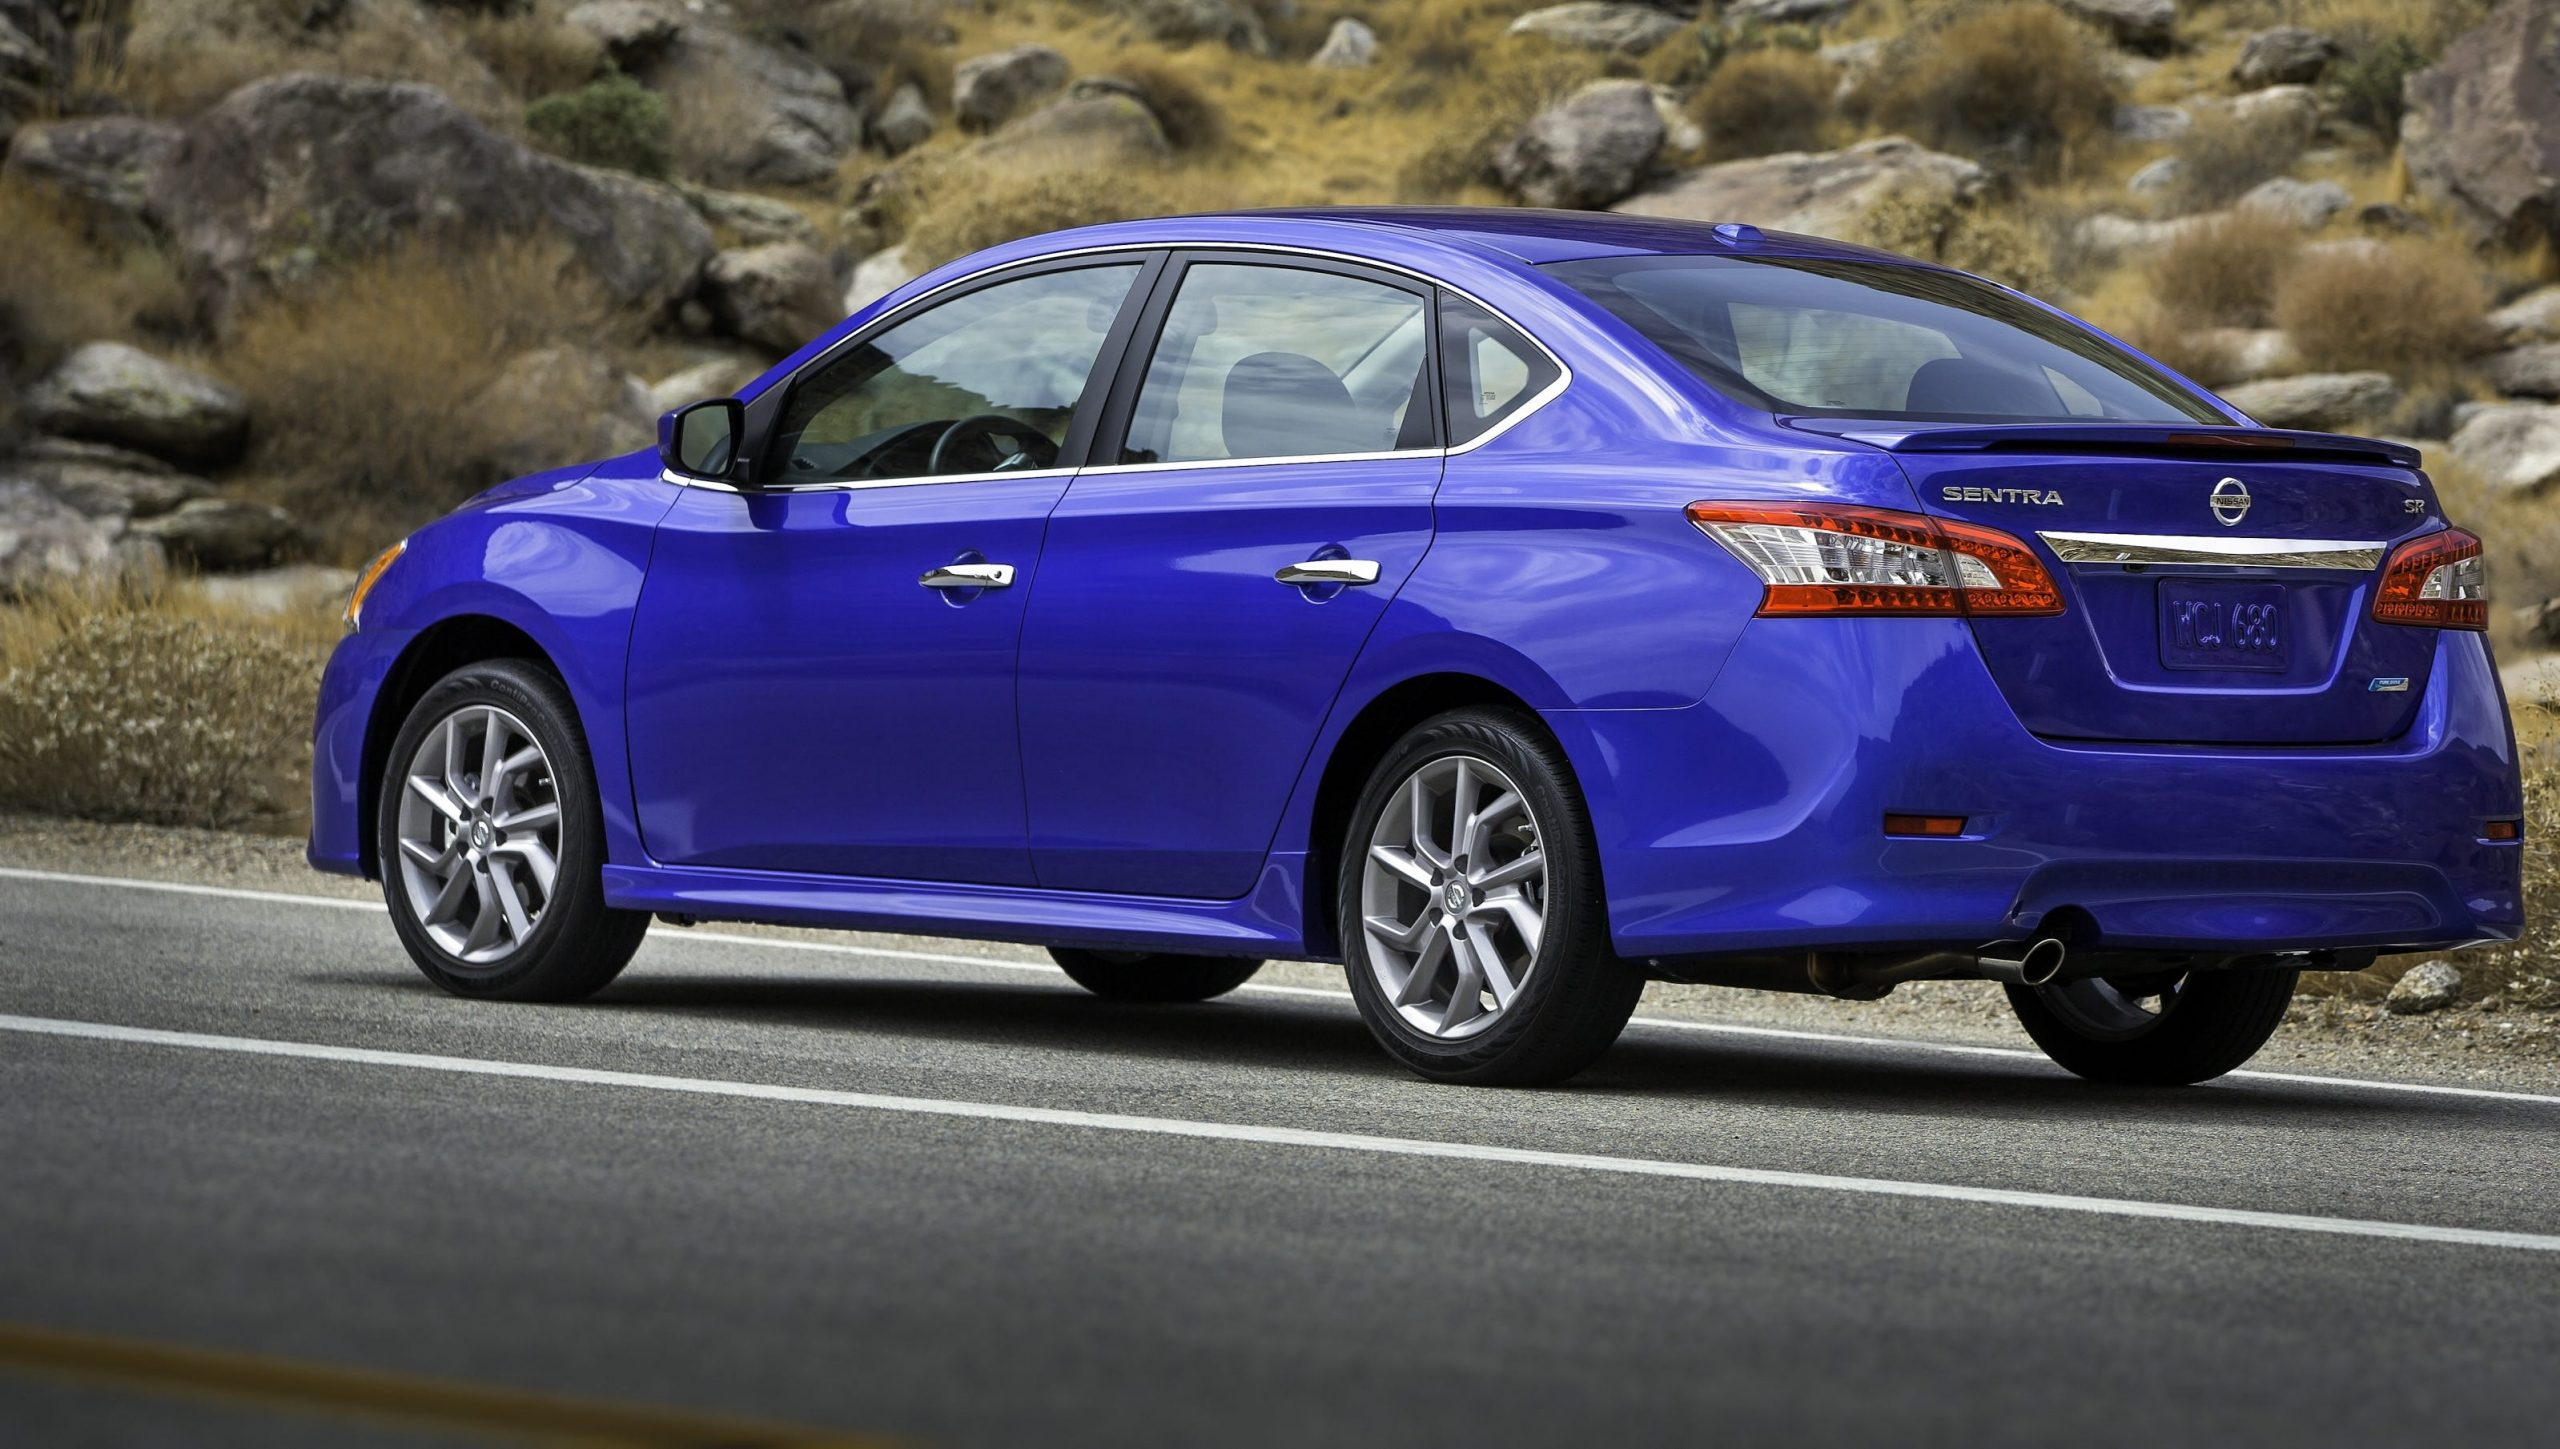 Nissan Sentra 2020 Specifications